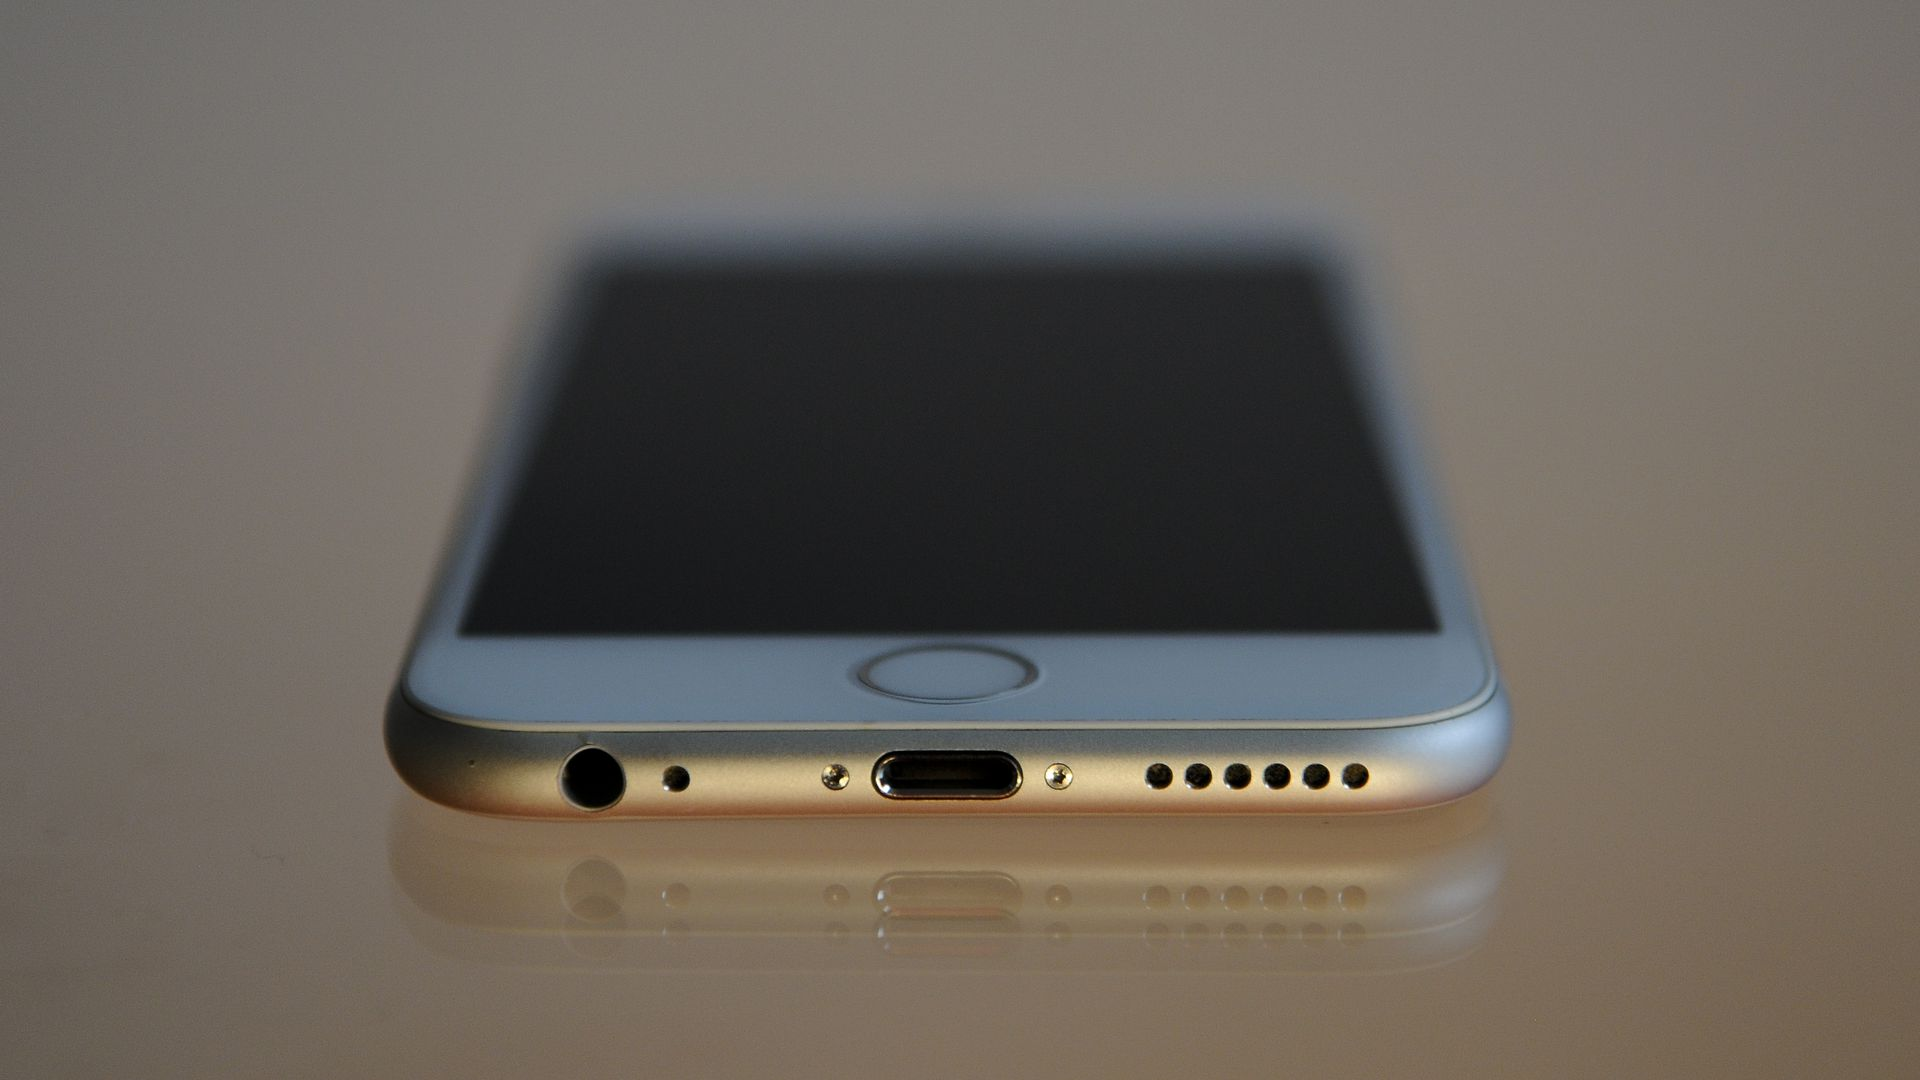 iPhone 6 viewed from the front edge